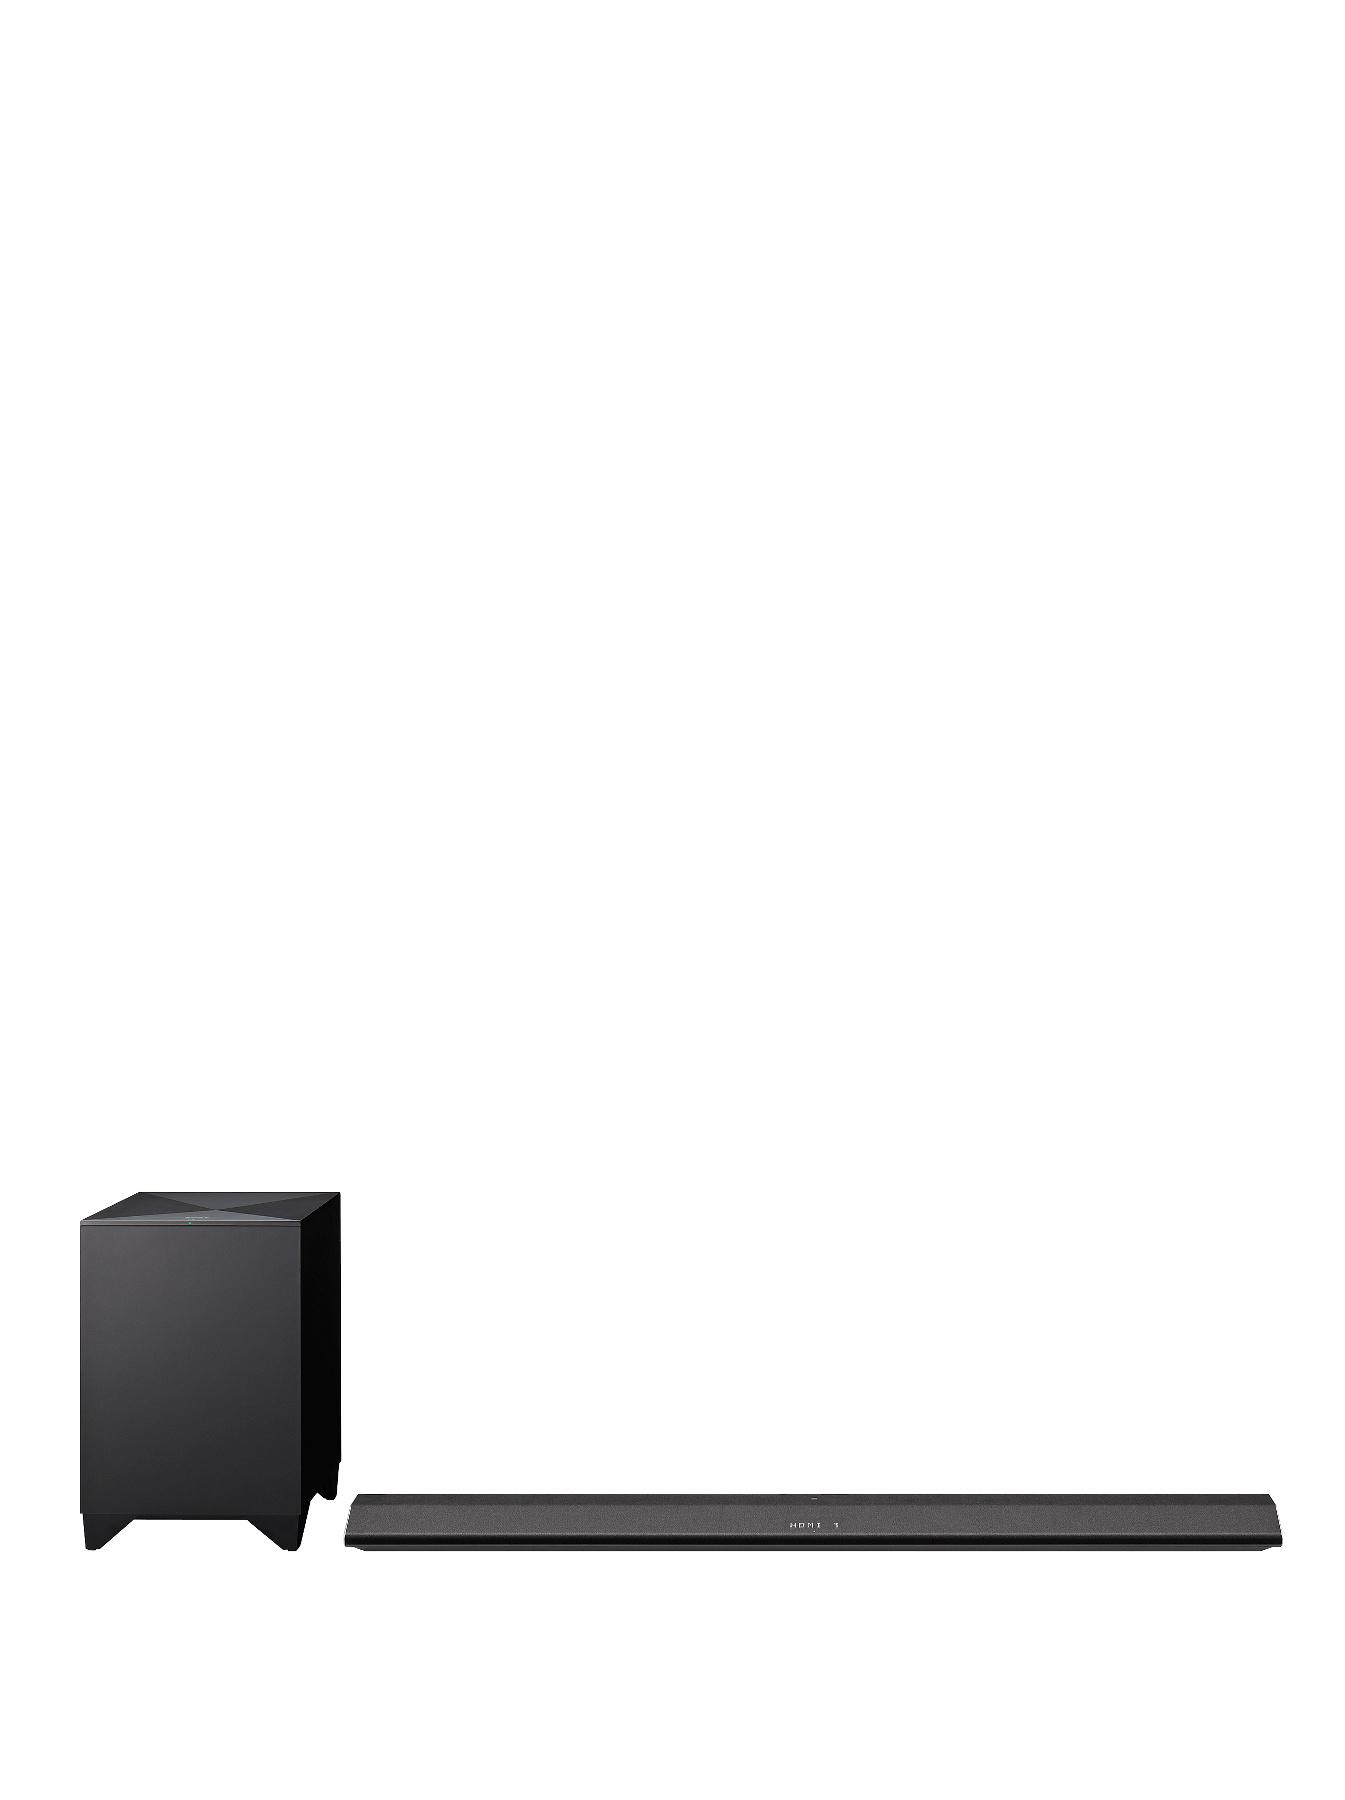 Sony HT-CT770 330 Watt Bluetooth Soundbar with Wireless Subwoofer